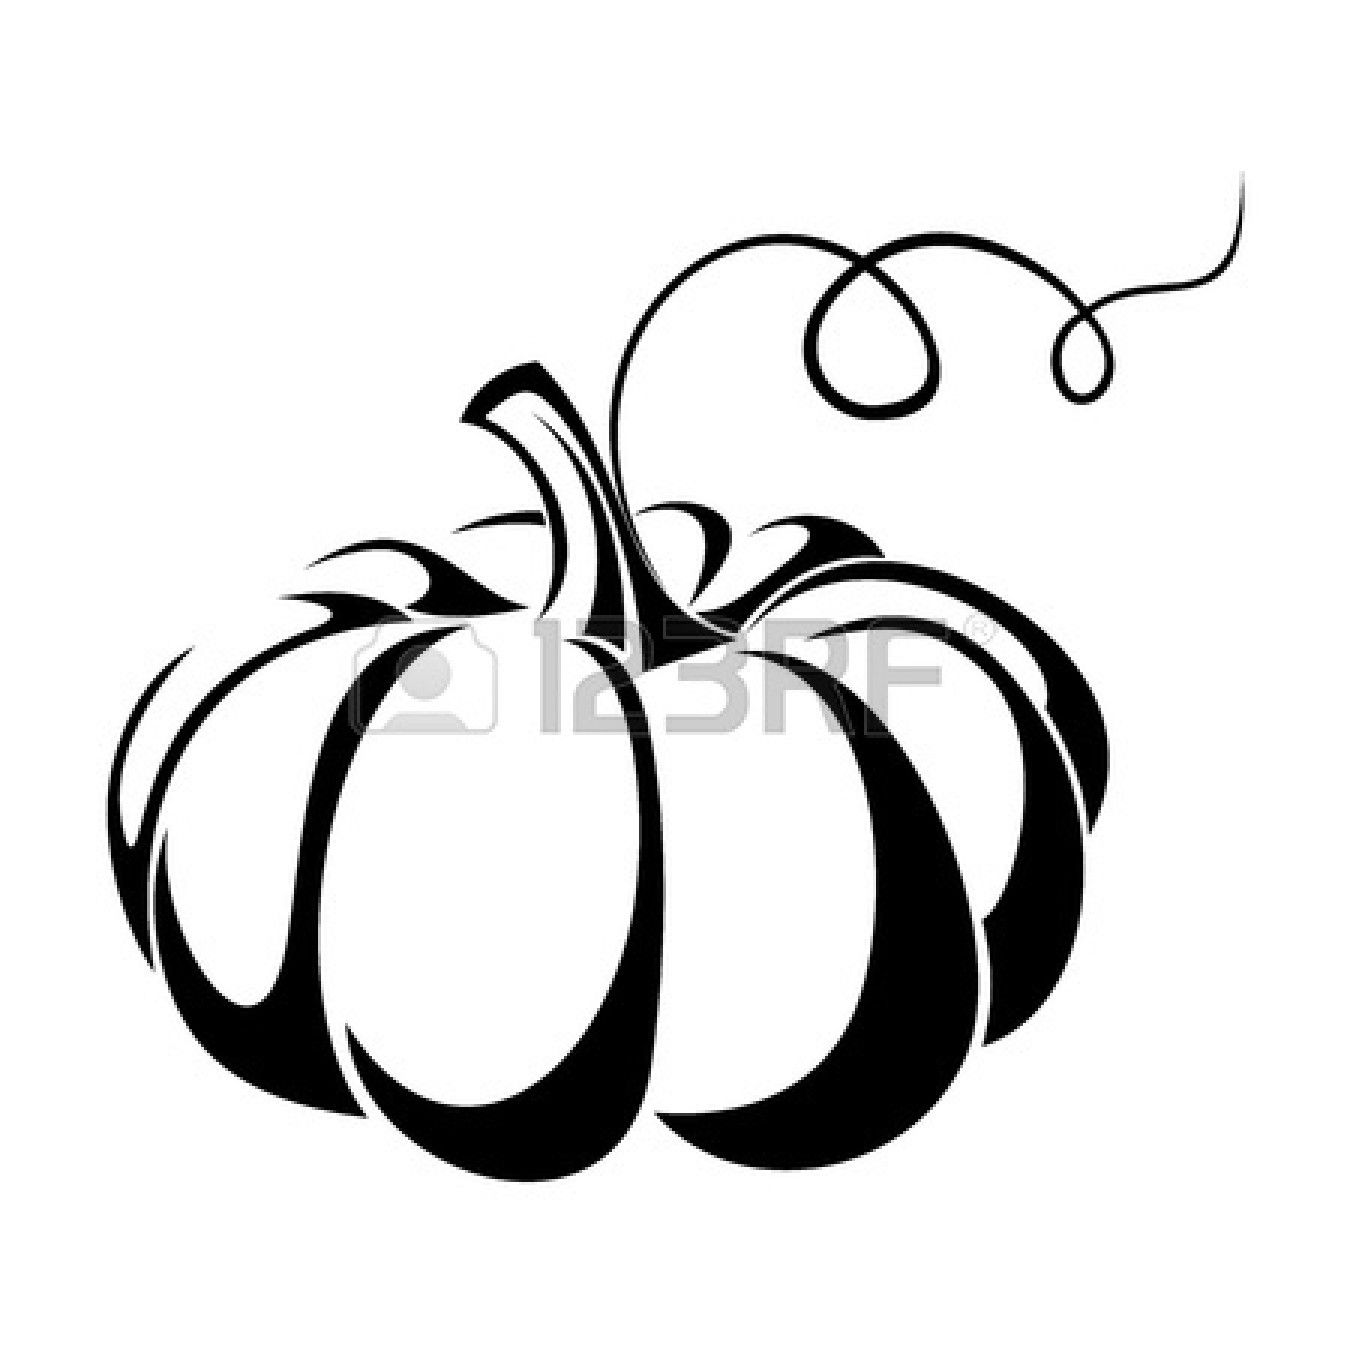 pumpkin patch clip art black and white 21995552 pumpkin vector black rh pinterest com black and white pumpkin pie clipart small black and white pumpkin clipart